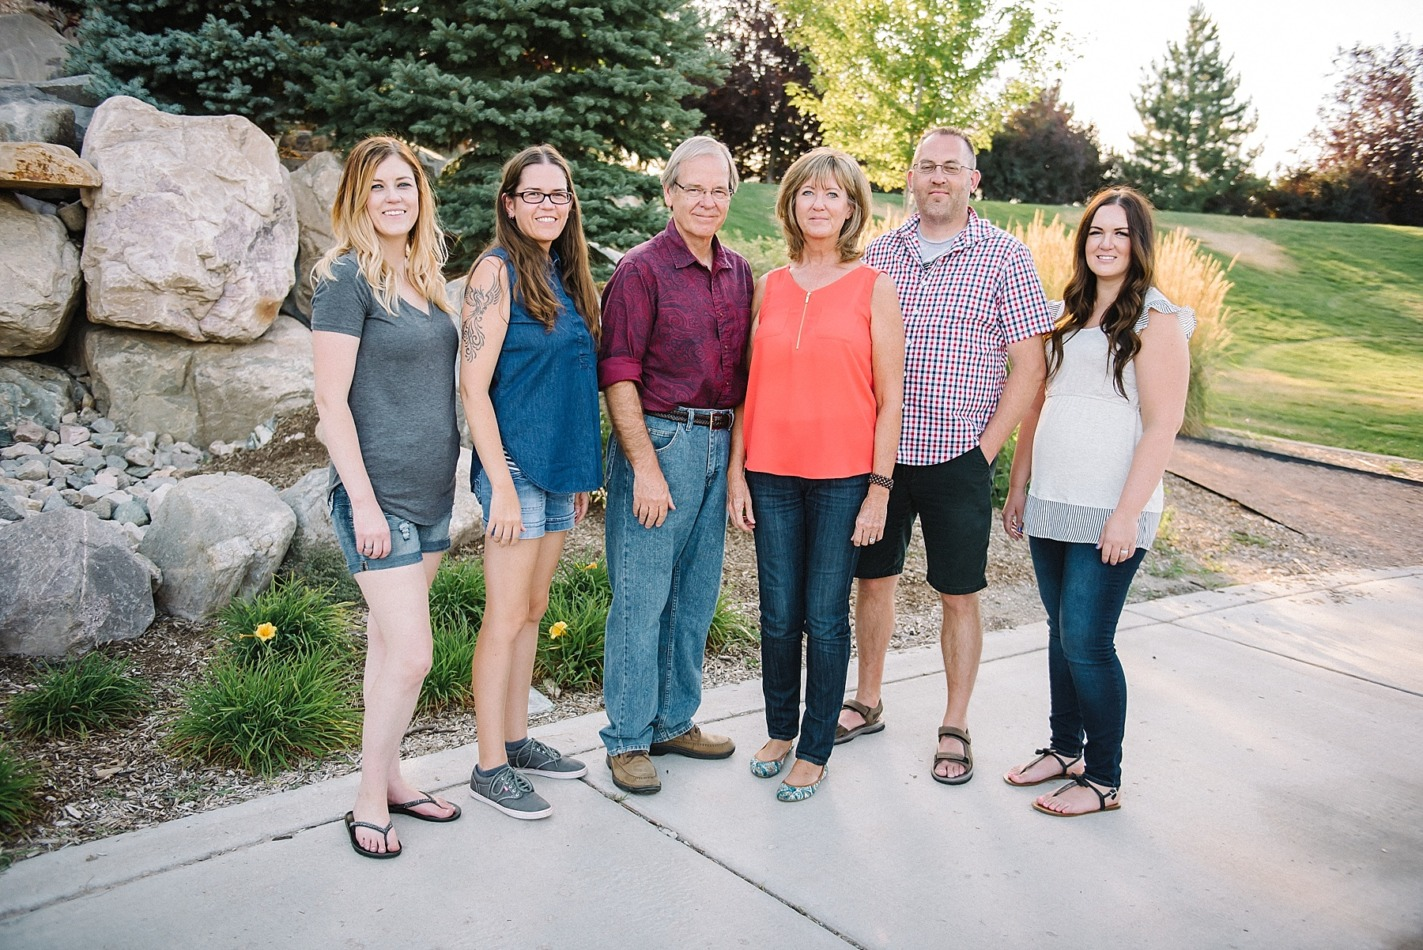 Extended family photographer davis county utah ali sumsion013